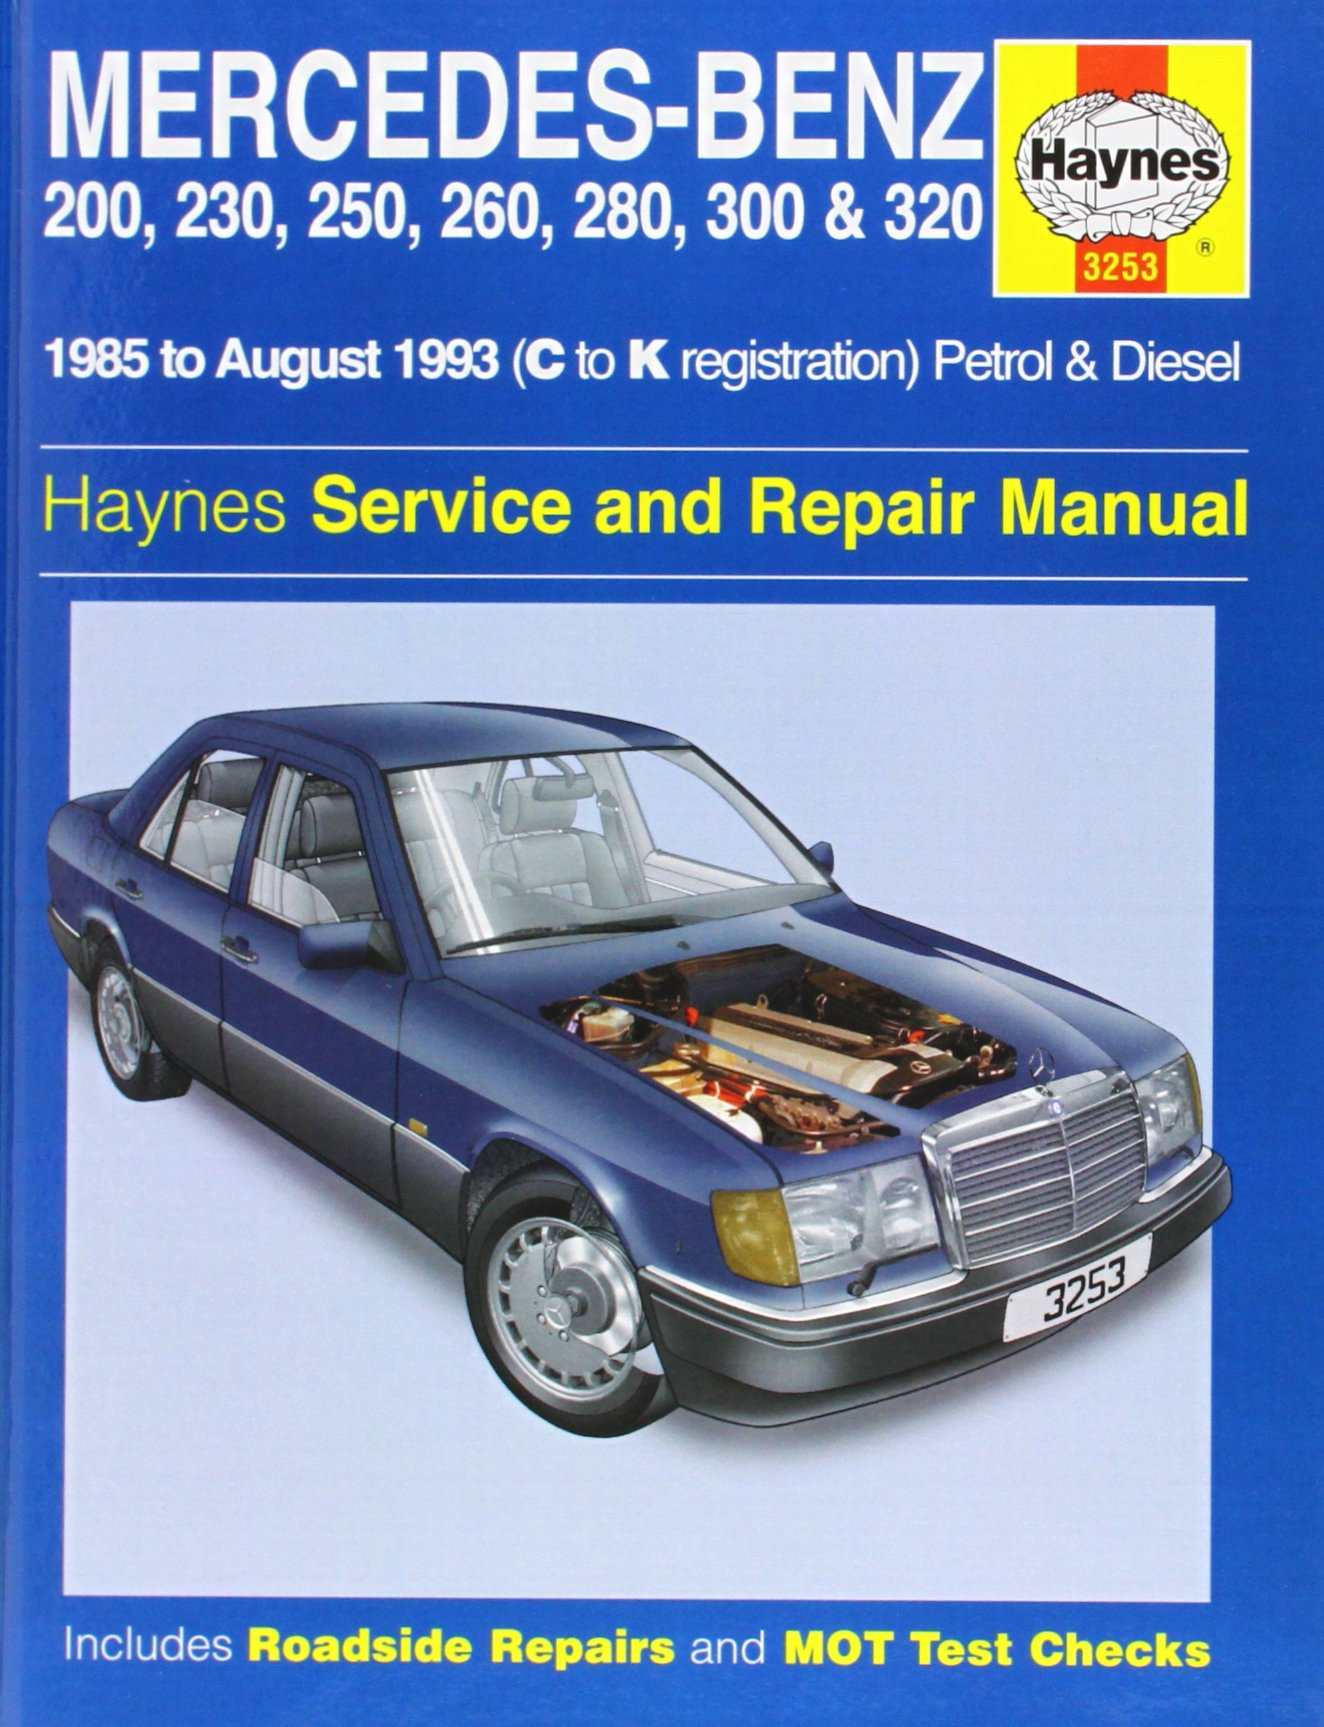 mercedes benz 124 series 85 93 service and repair manual haynes rh amazon  com 1996 Mercedes S500 Coupe Mercedes-Benz W140